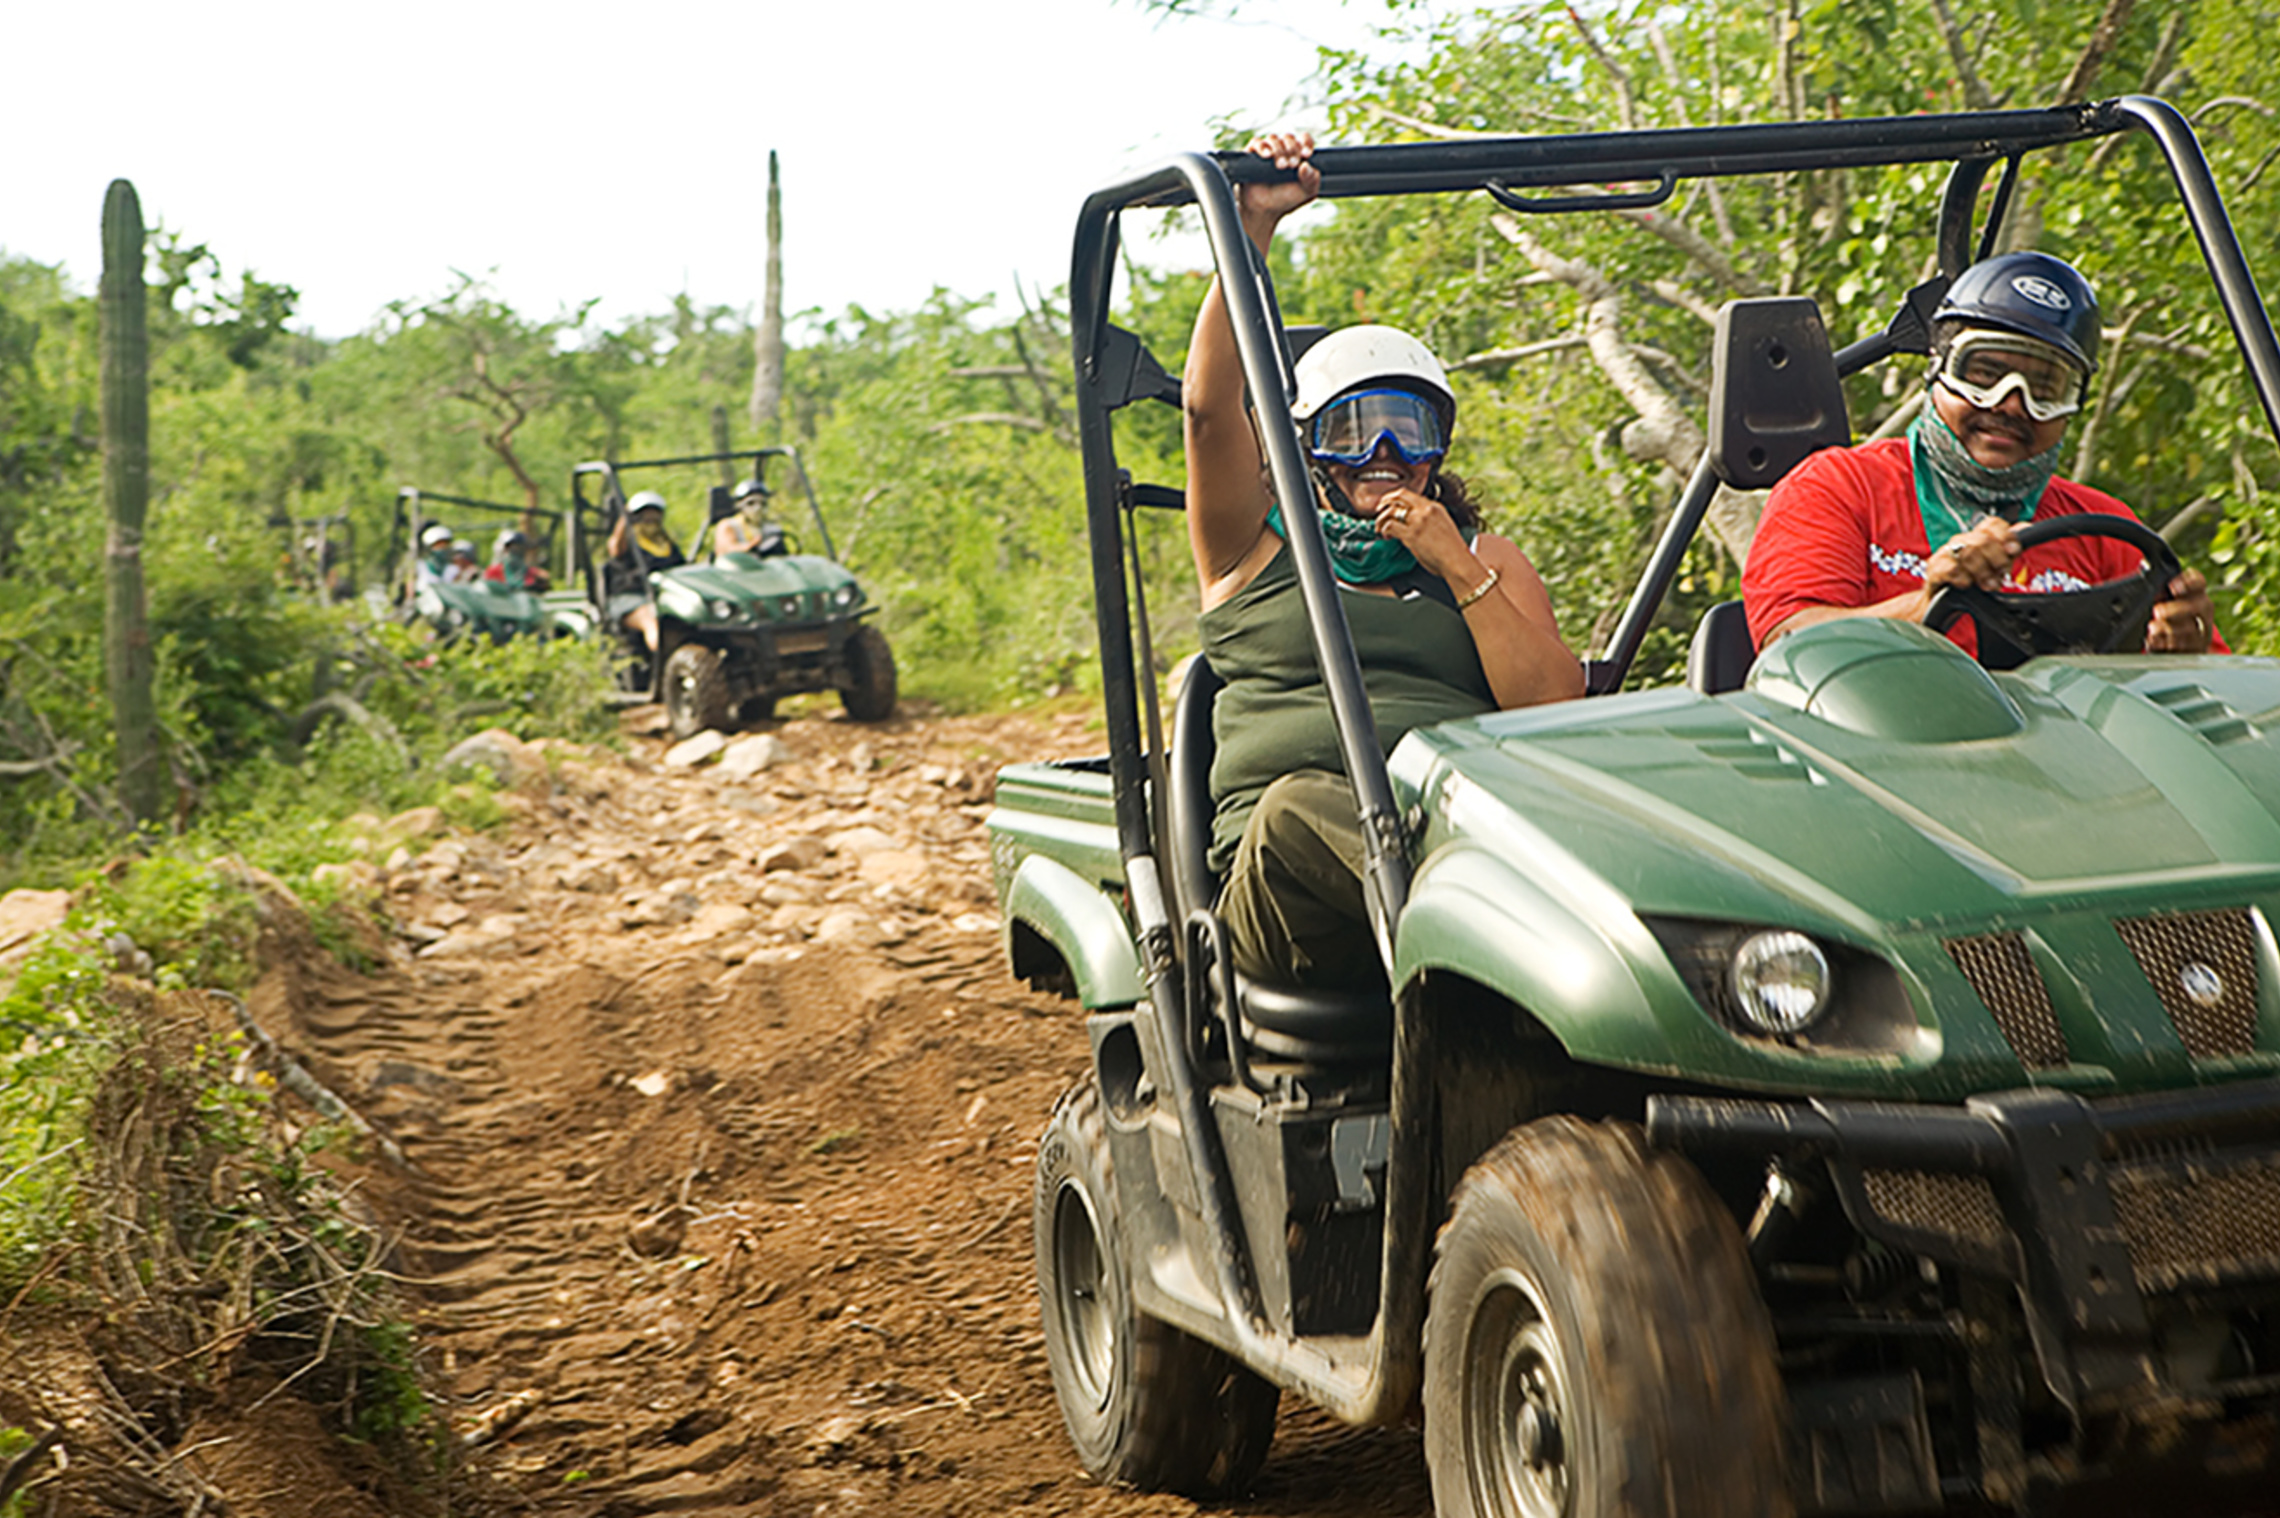 atv tour manuel antonio, atv tour manuel antonio national park, atv tour quespos, atv, quepos manuel